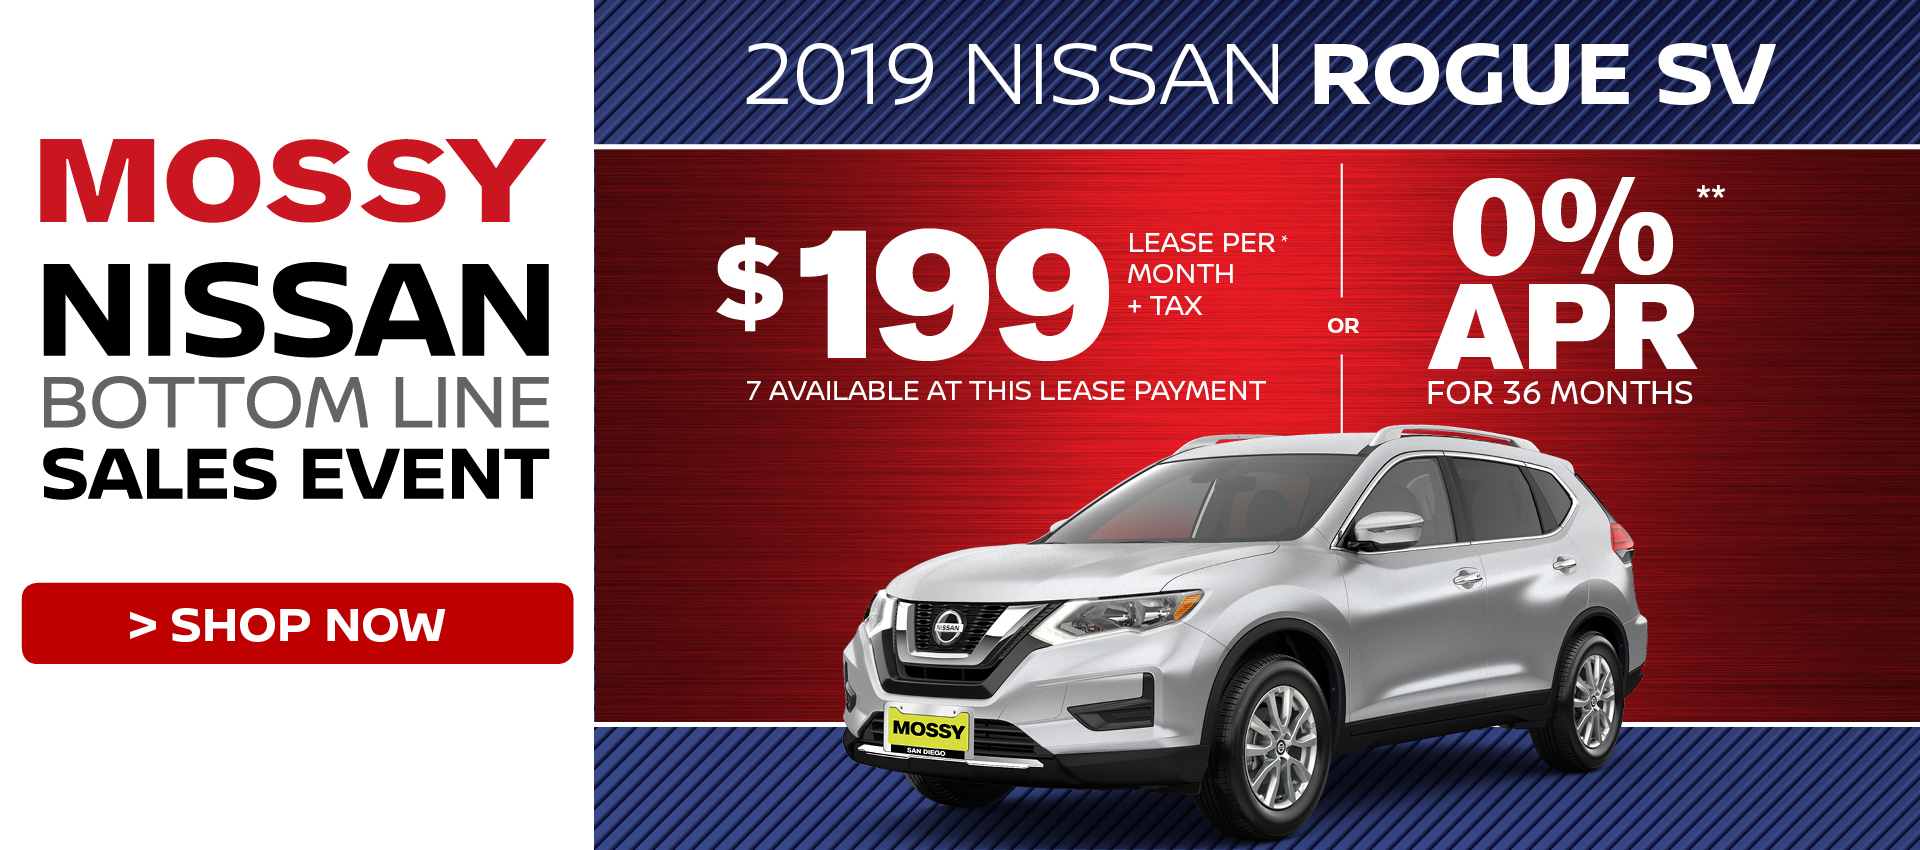 Mossy Nissan - Nissan Rogue SV  $199 Lease HP